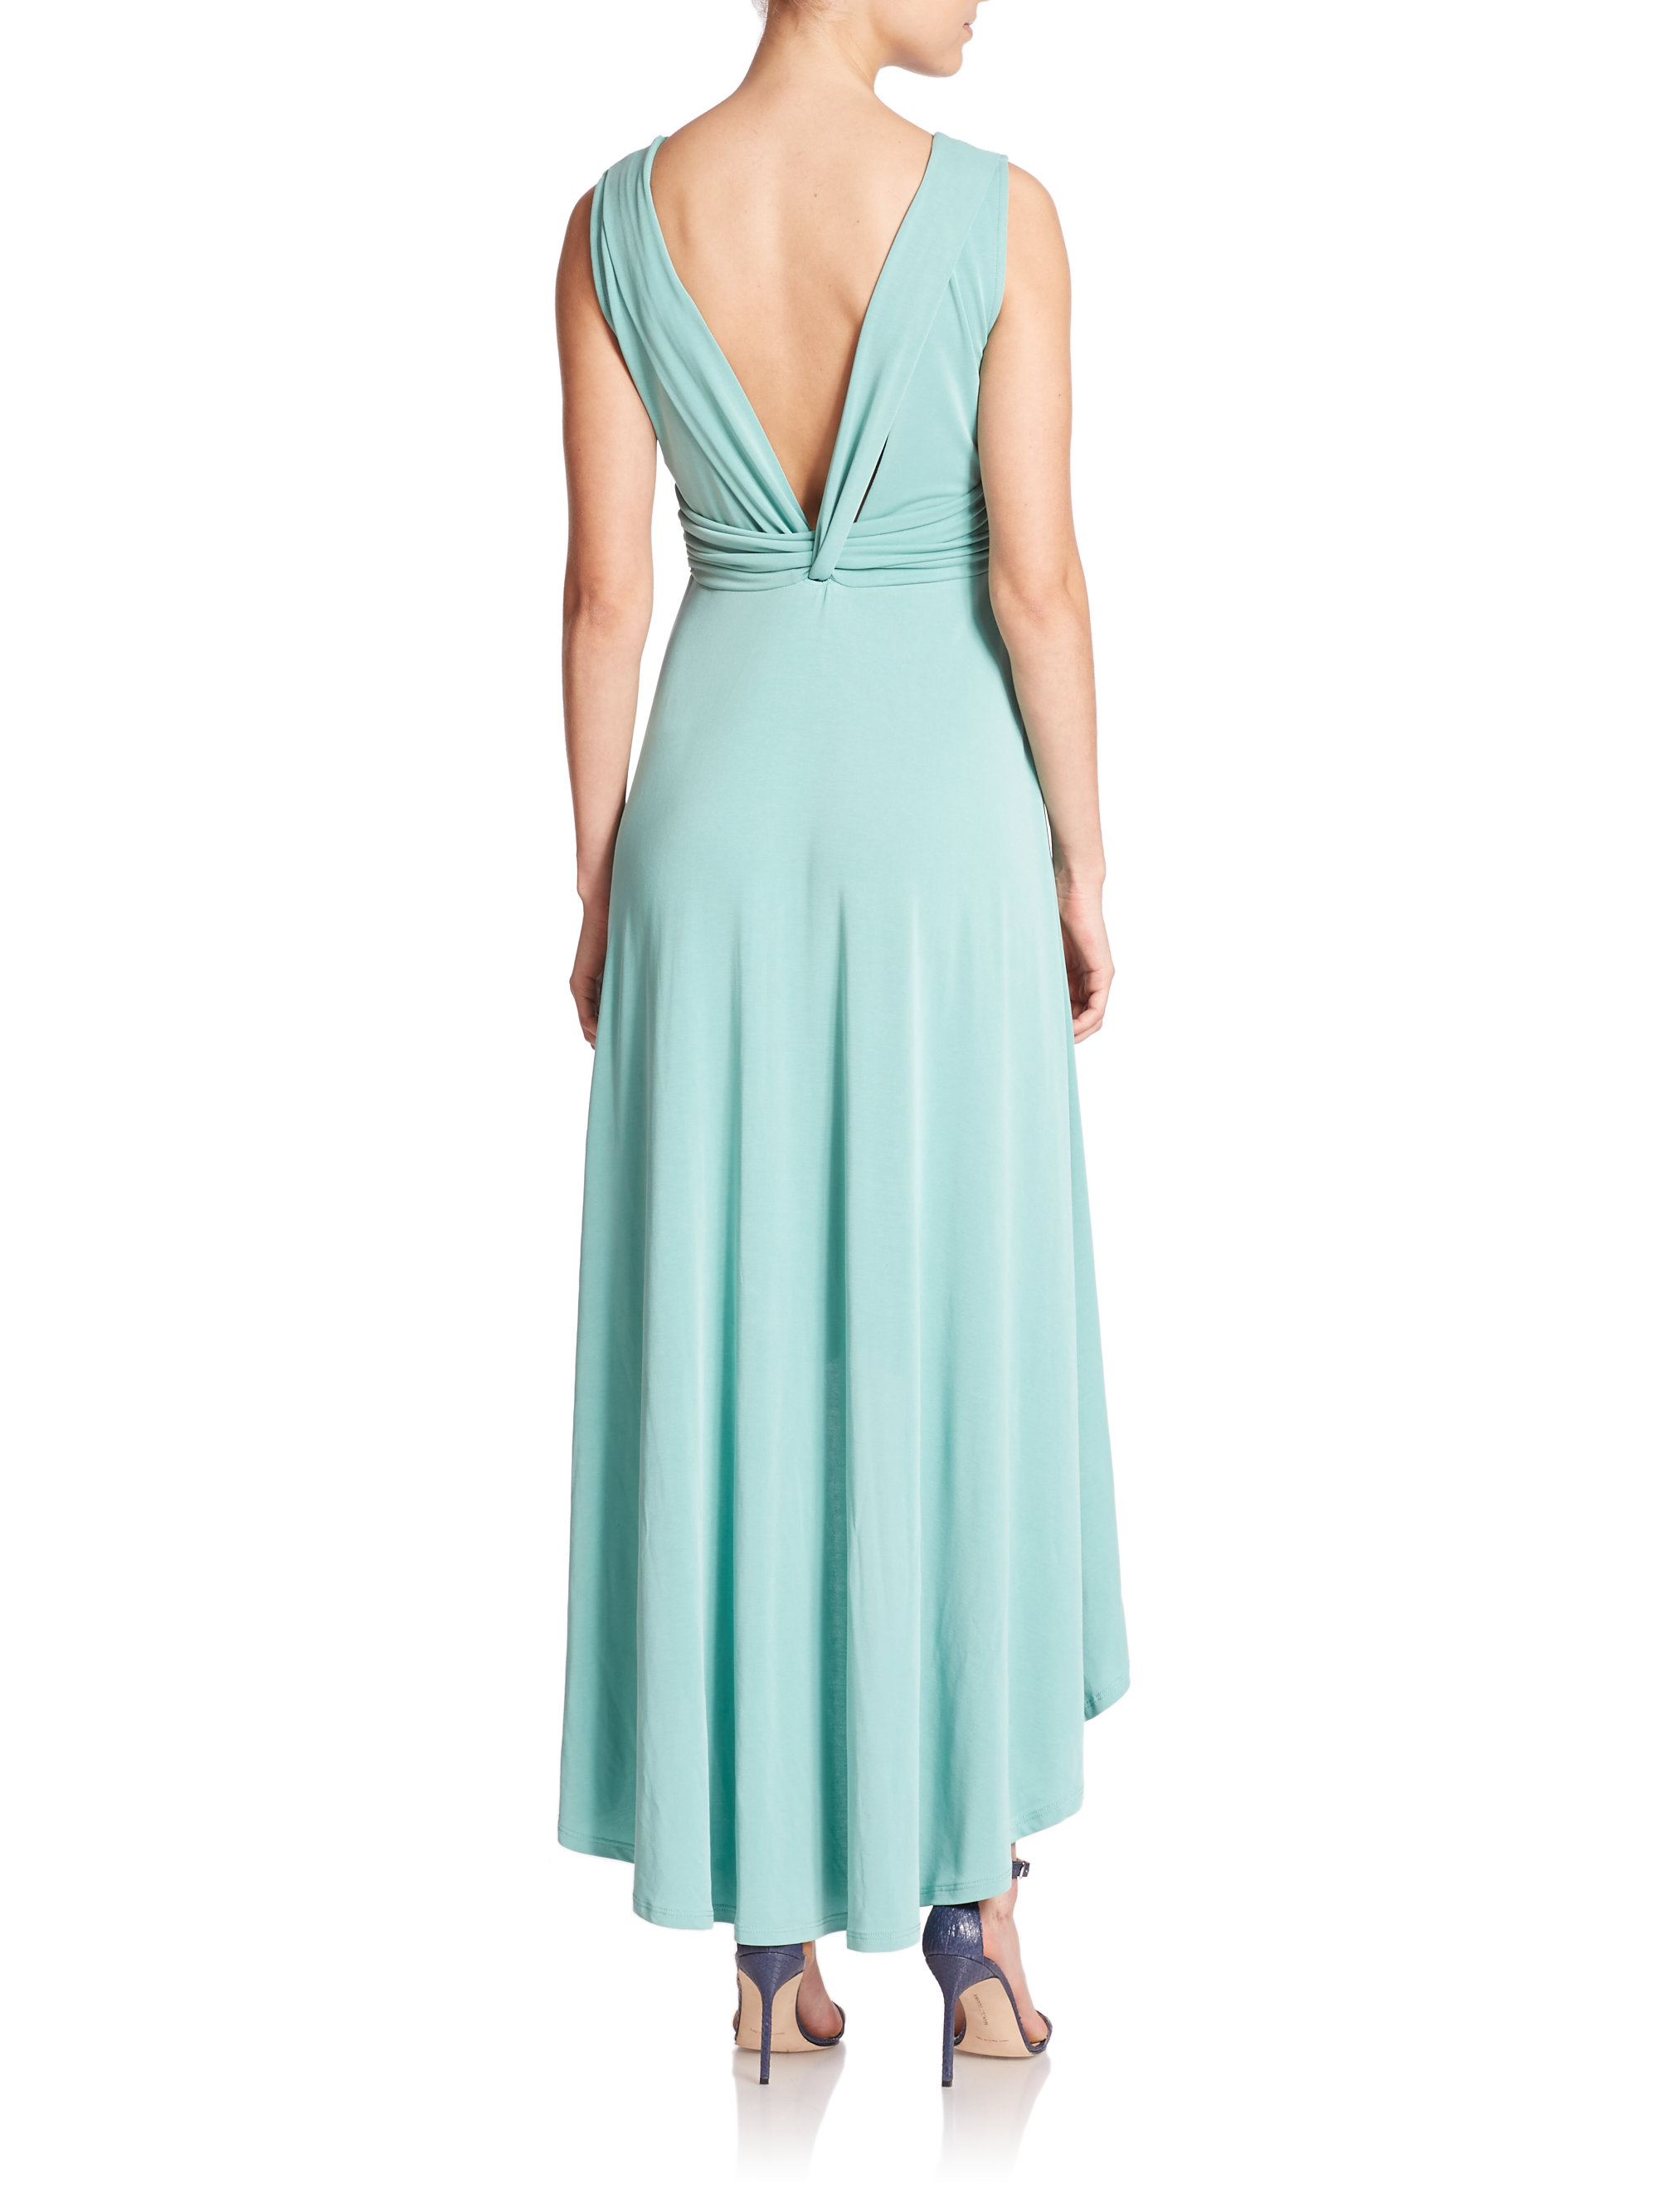 Lyst - Bcbgmaxazria Fara Hi-lo Maxi Dress in Blue